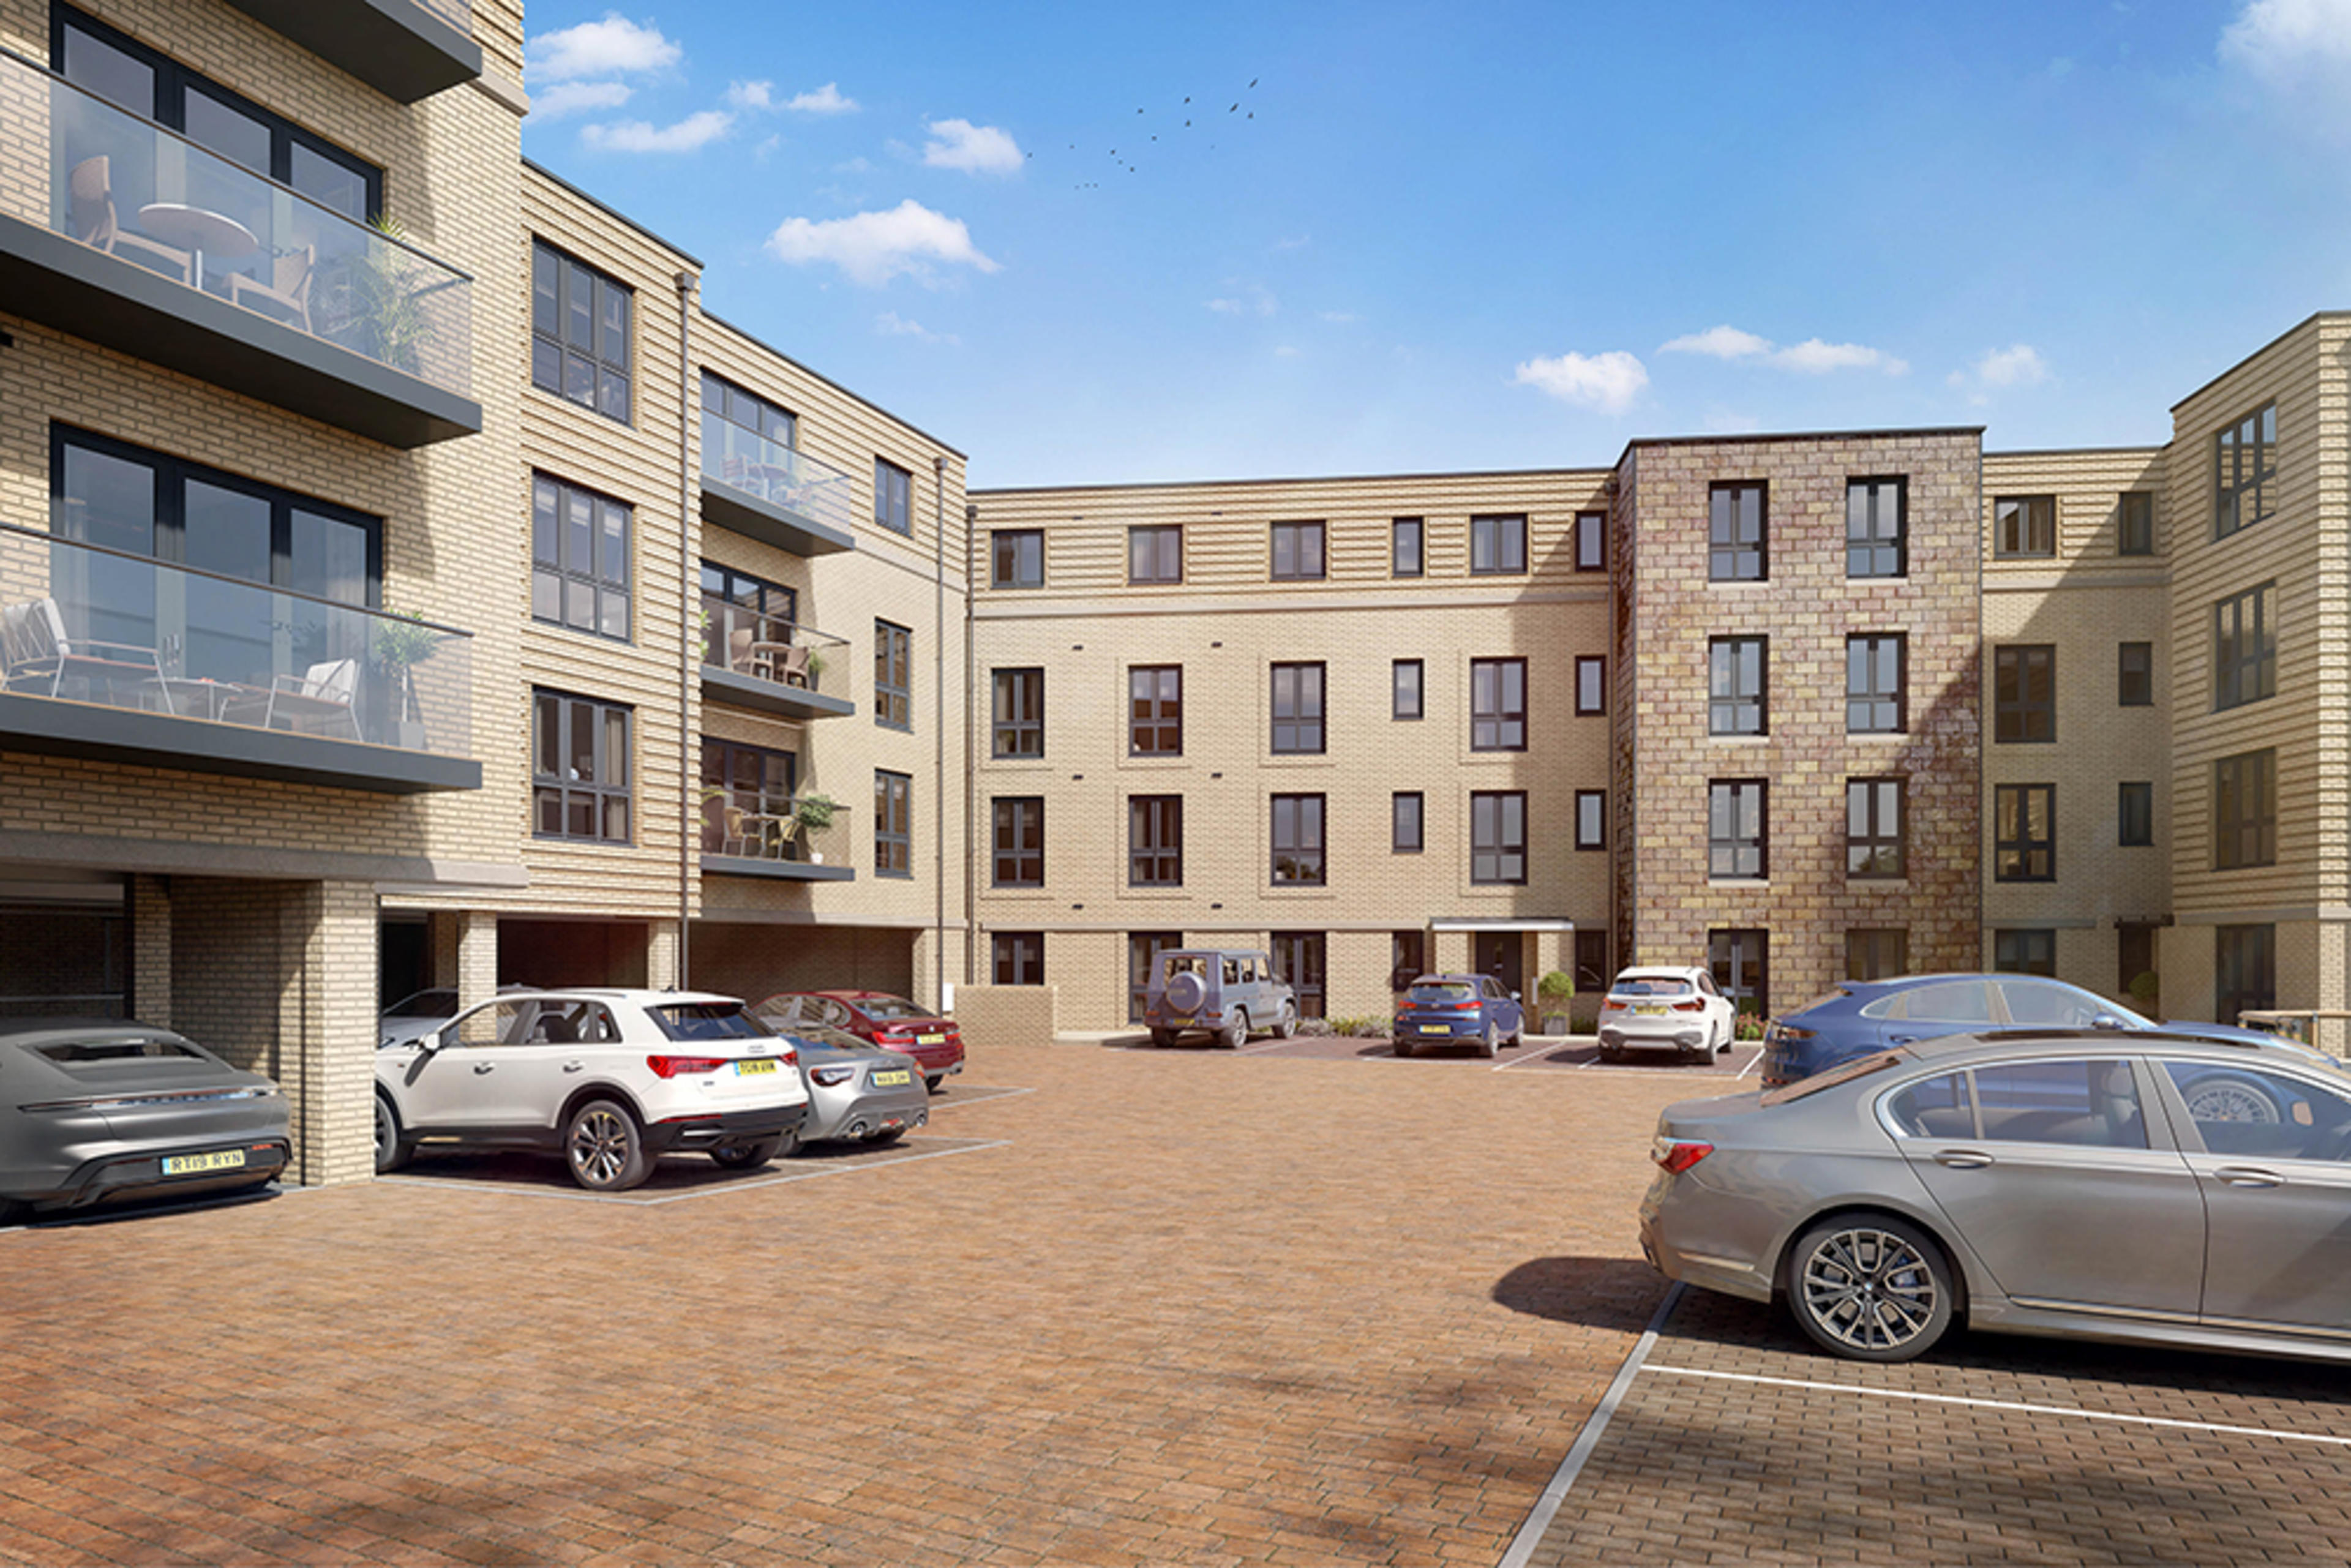 CGI-external-Bowlers Court-Chelmsford-Springfield Road-02-LR